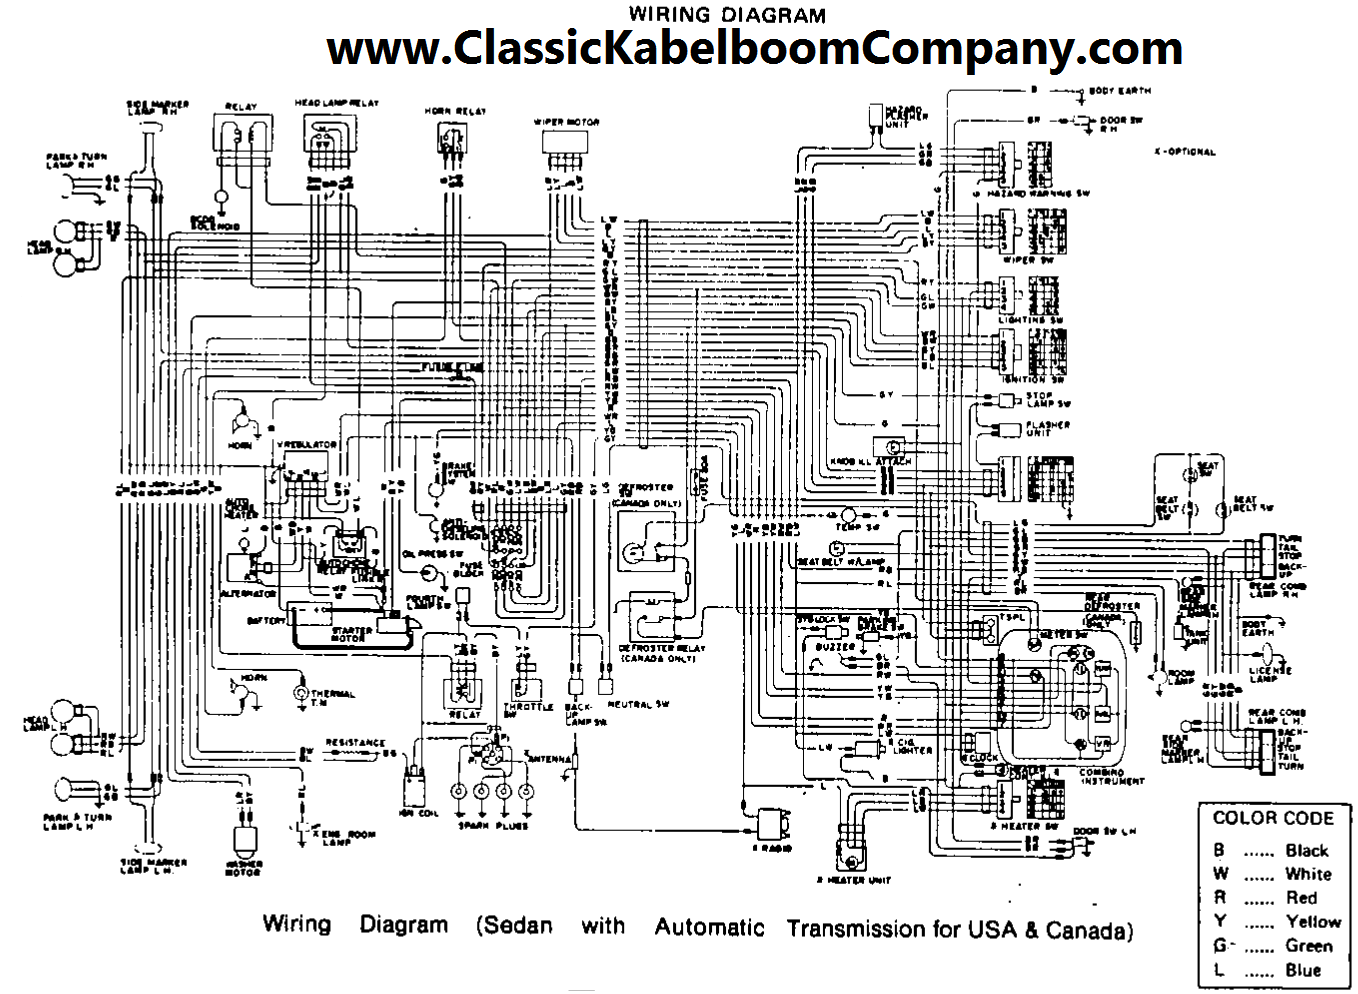 Datsun 521 Engine Wiring Diagrams Wiring Diagram | Jzgreentown.com